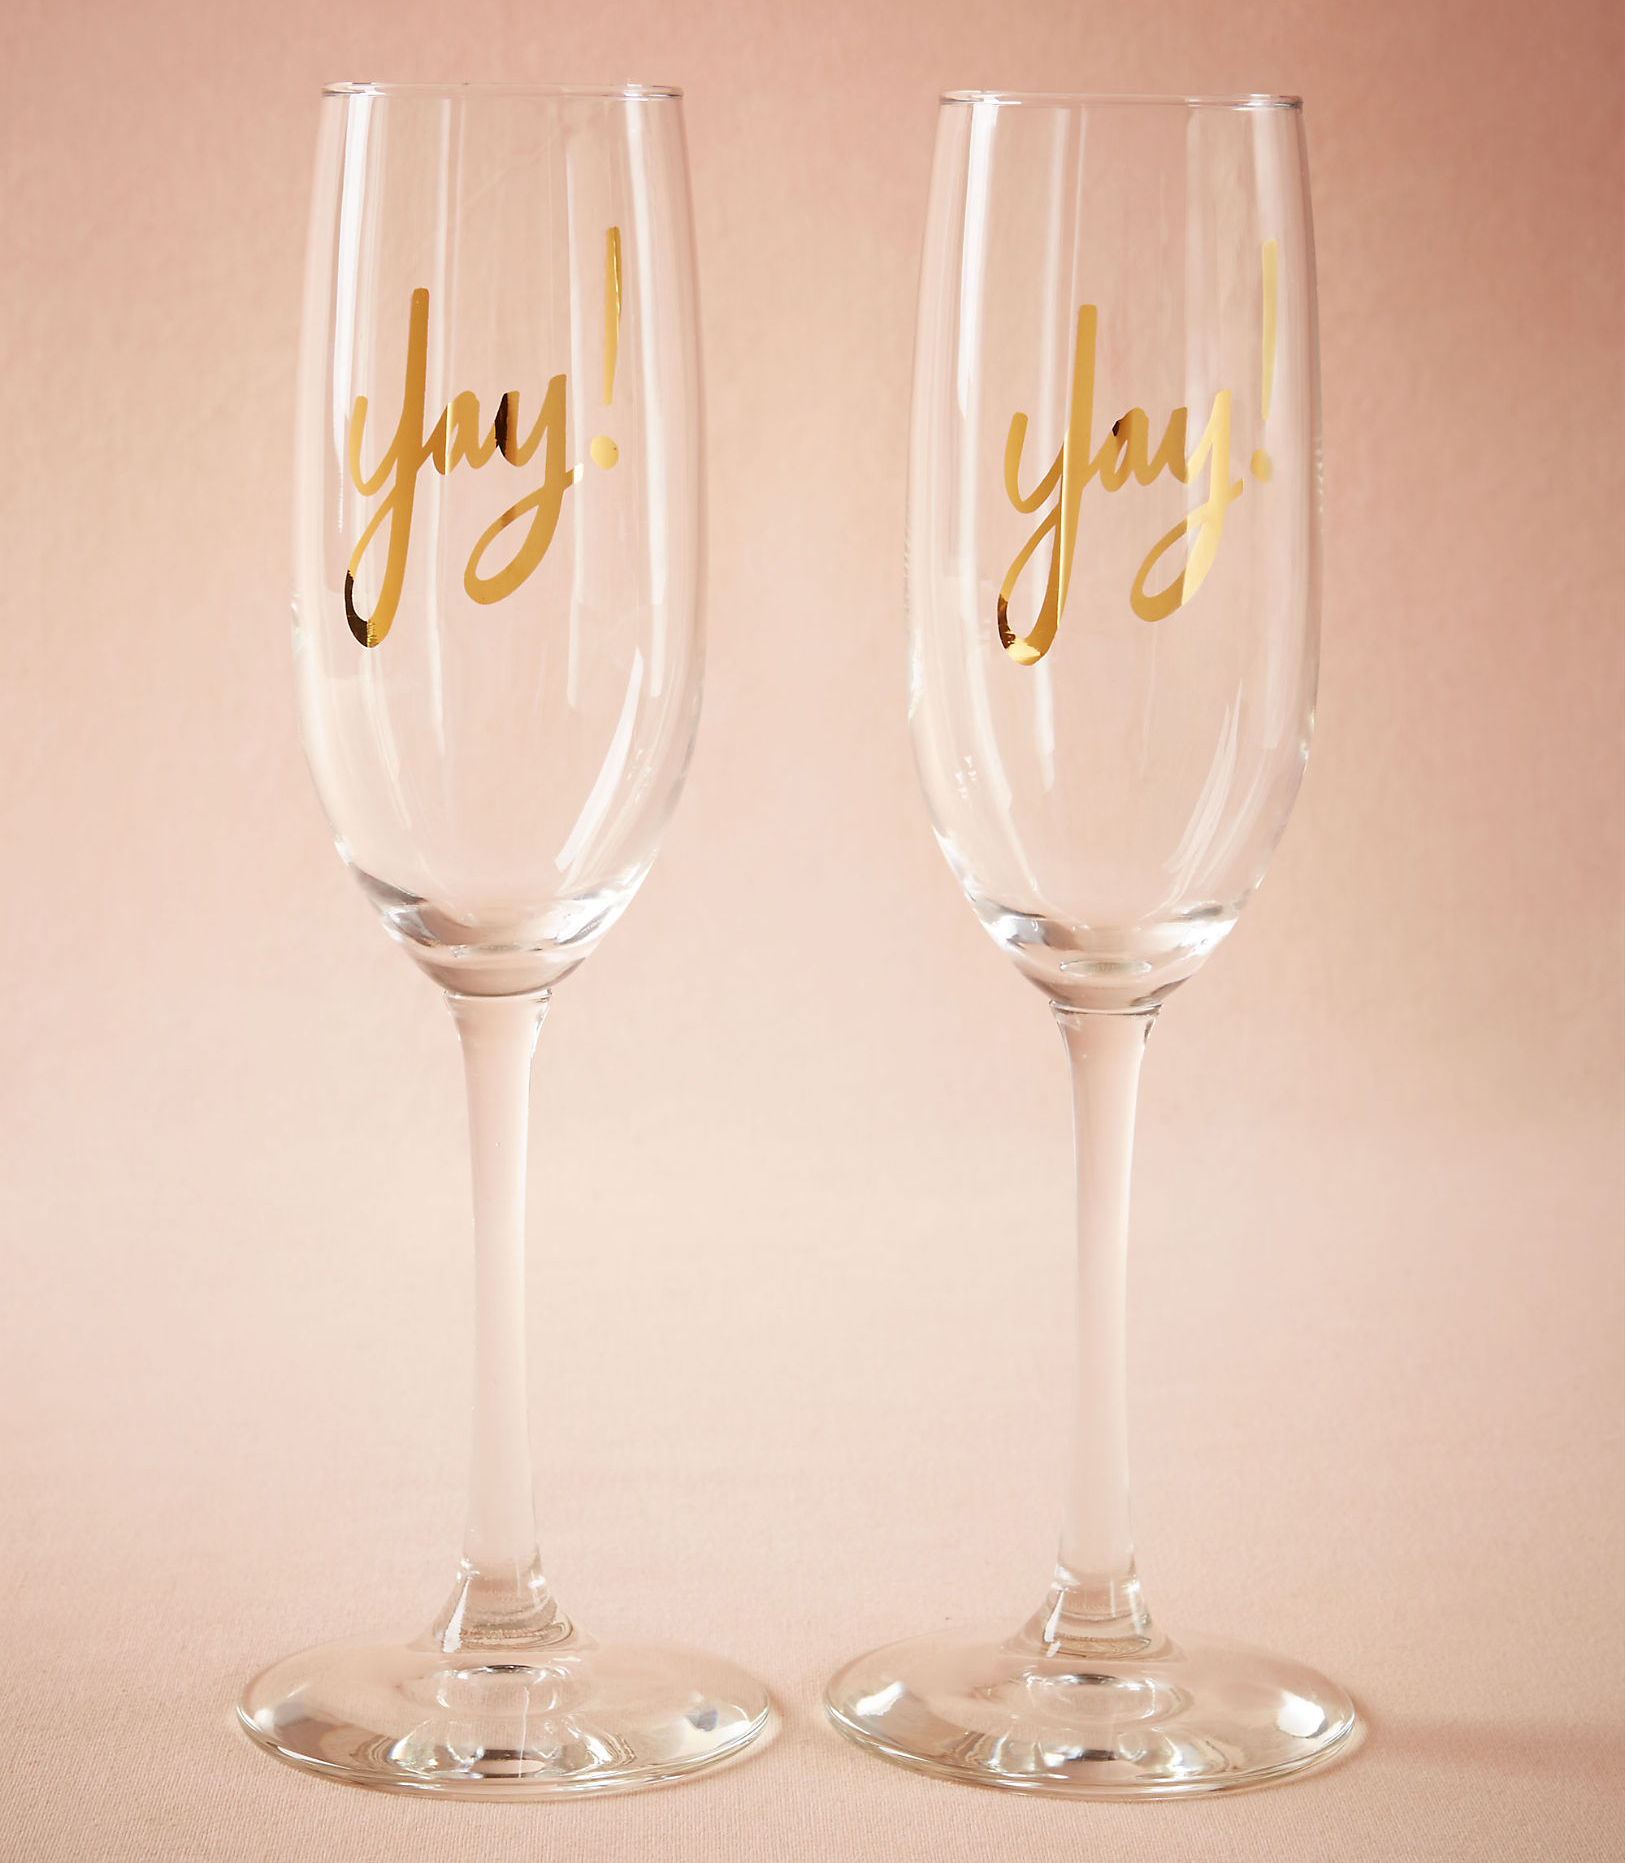 BHLDN Yay! Champagne flutes gold lettering engaged couple holiday gift idea